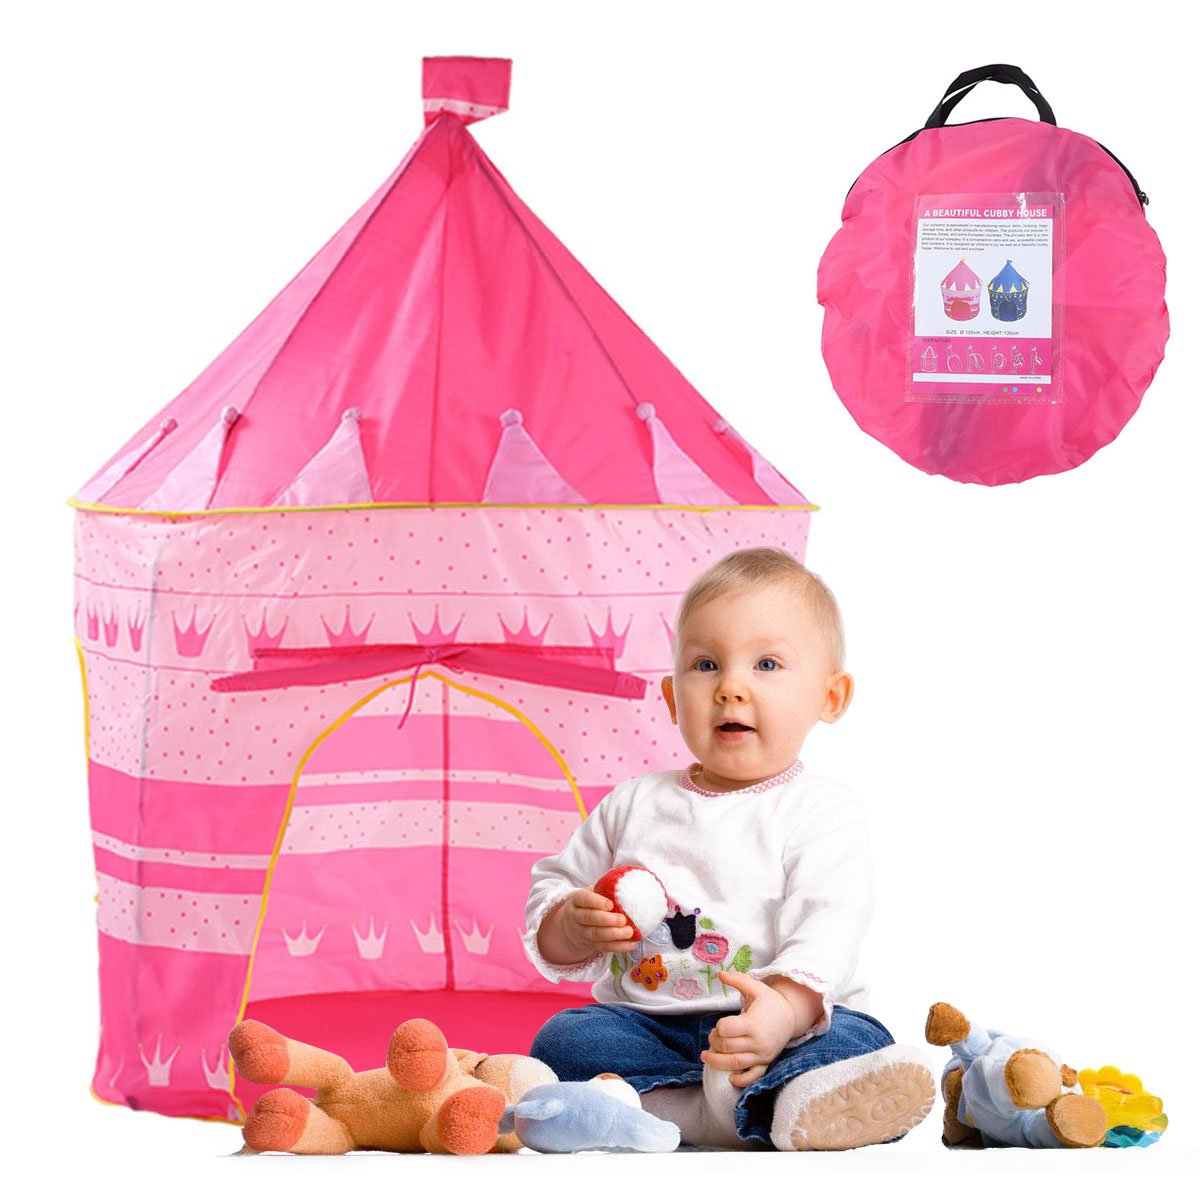 Castle Tent Play Tent Playhouse for Kids Indoor Outdoor Princess Castle Room Girls Toy Tents for Boys Kindergarten Games Gift for Children Portable Foldable , with Carrying Case (Pink Castle)